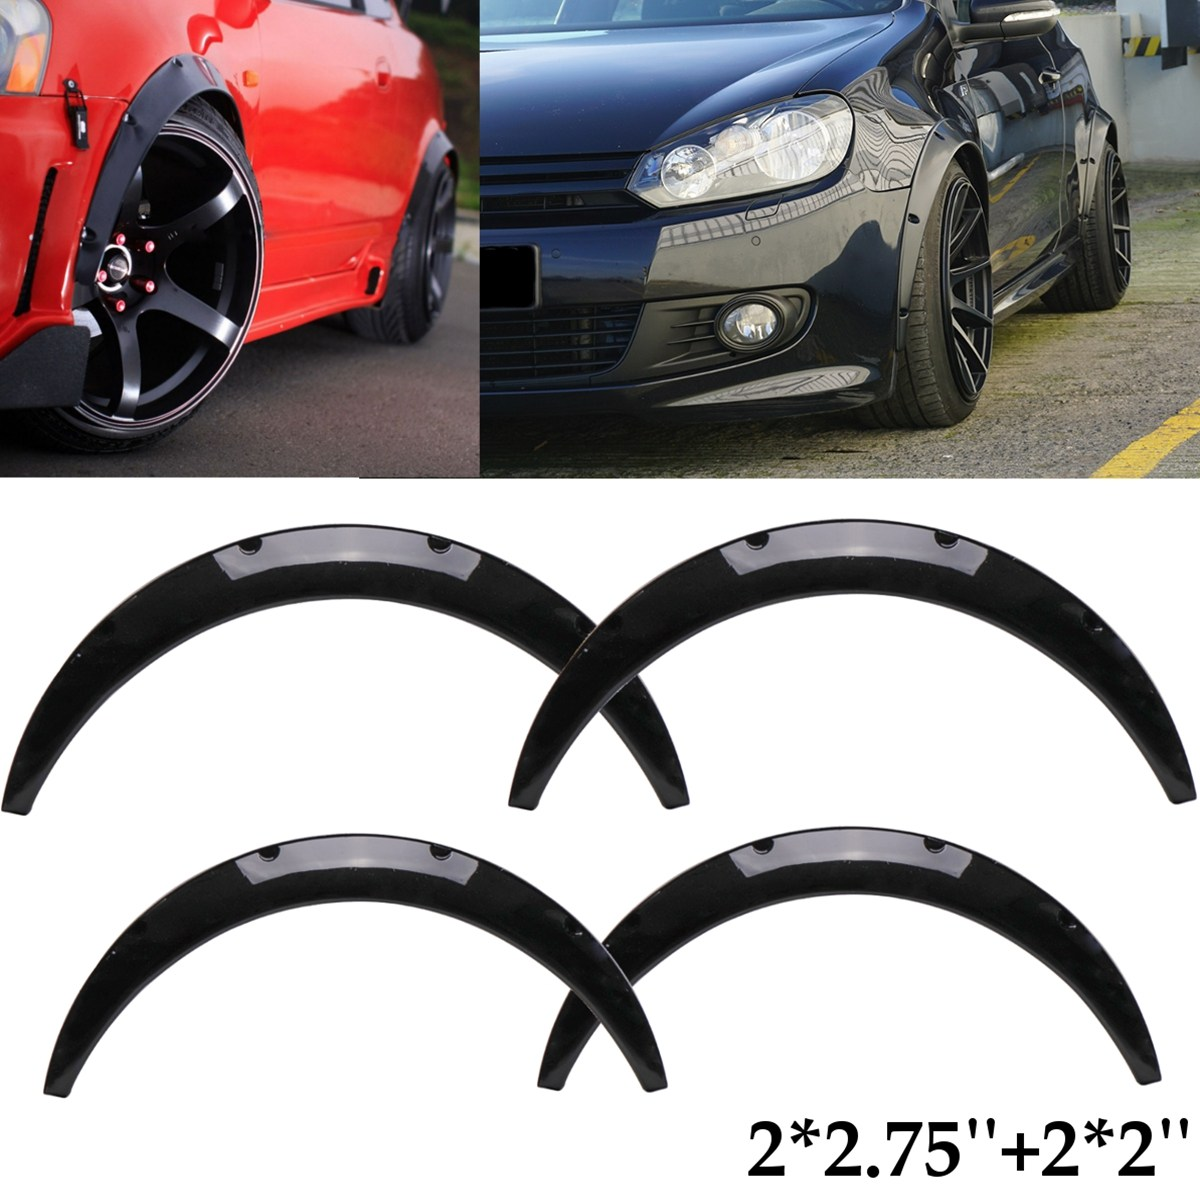 Фотография Universal Flexible Car Body For Fender Flares Extension Wide Wheel Arches For Mazda/Nissan Miata 200SX 240SX 300ZX 1980-2015